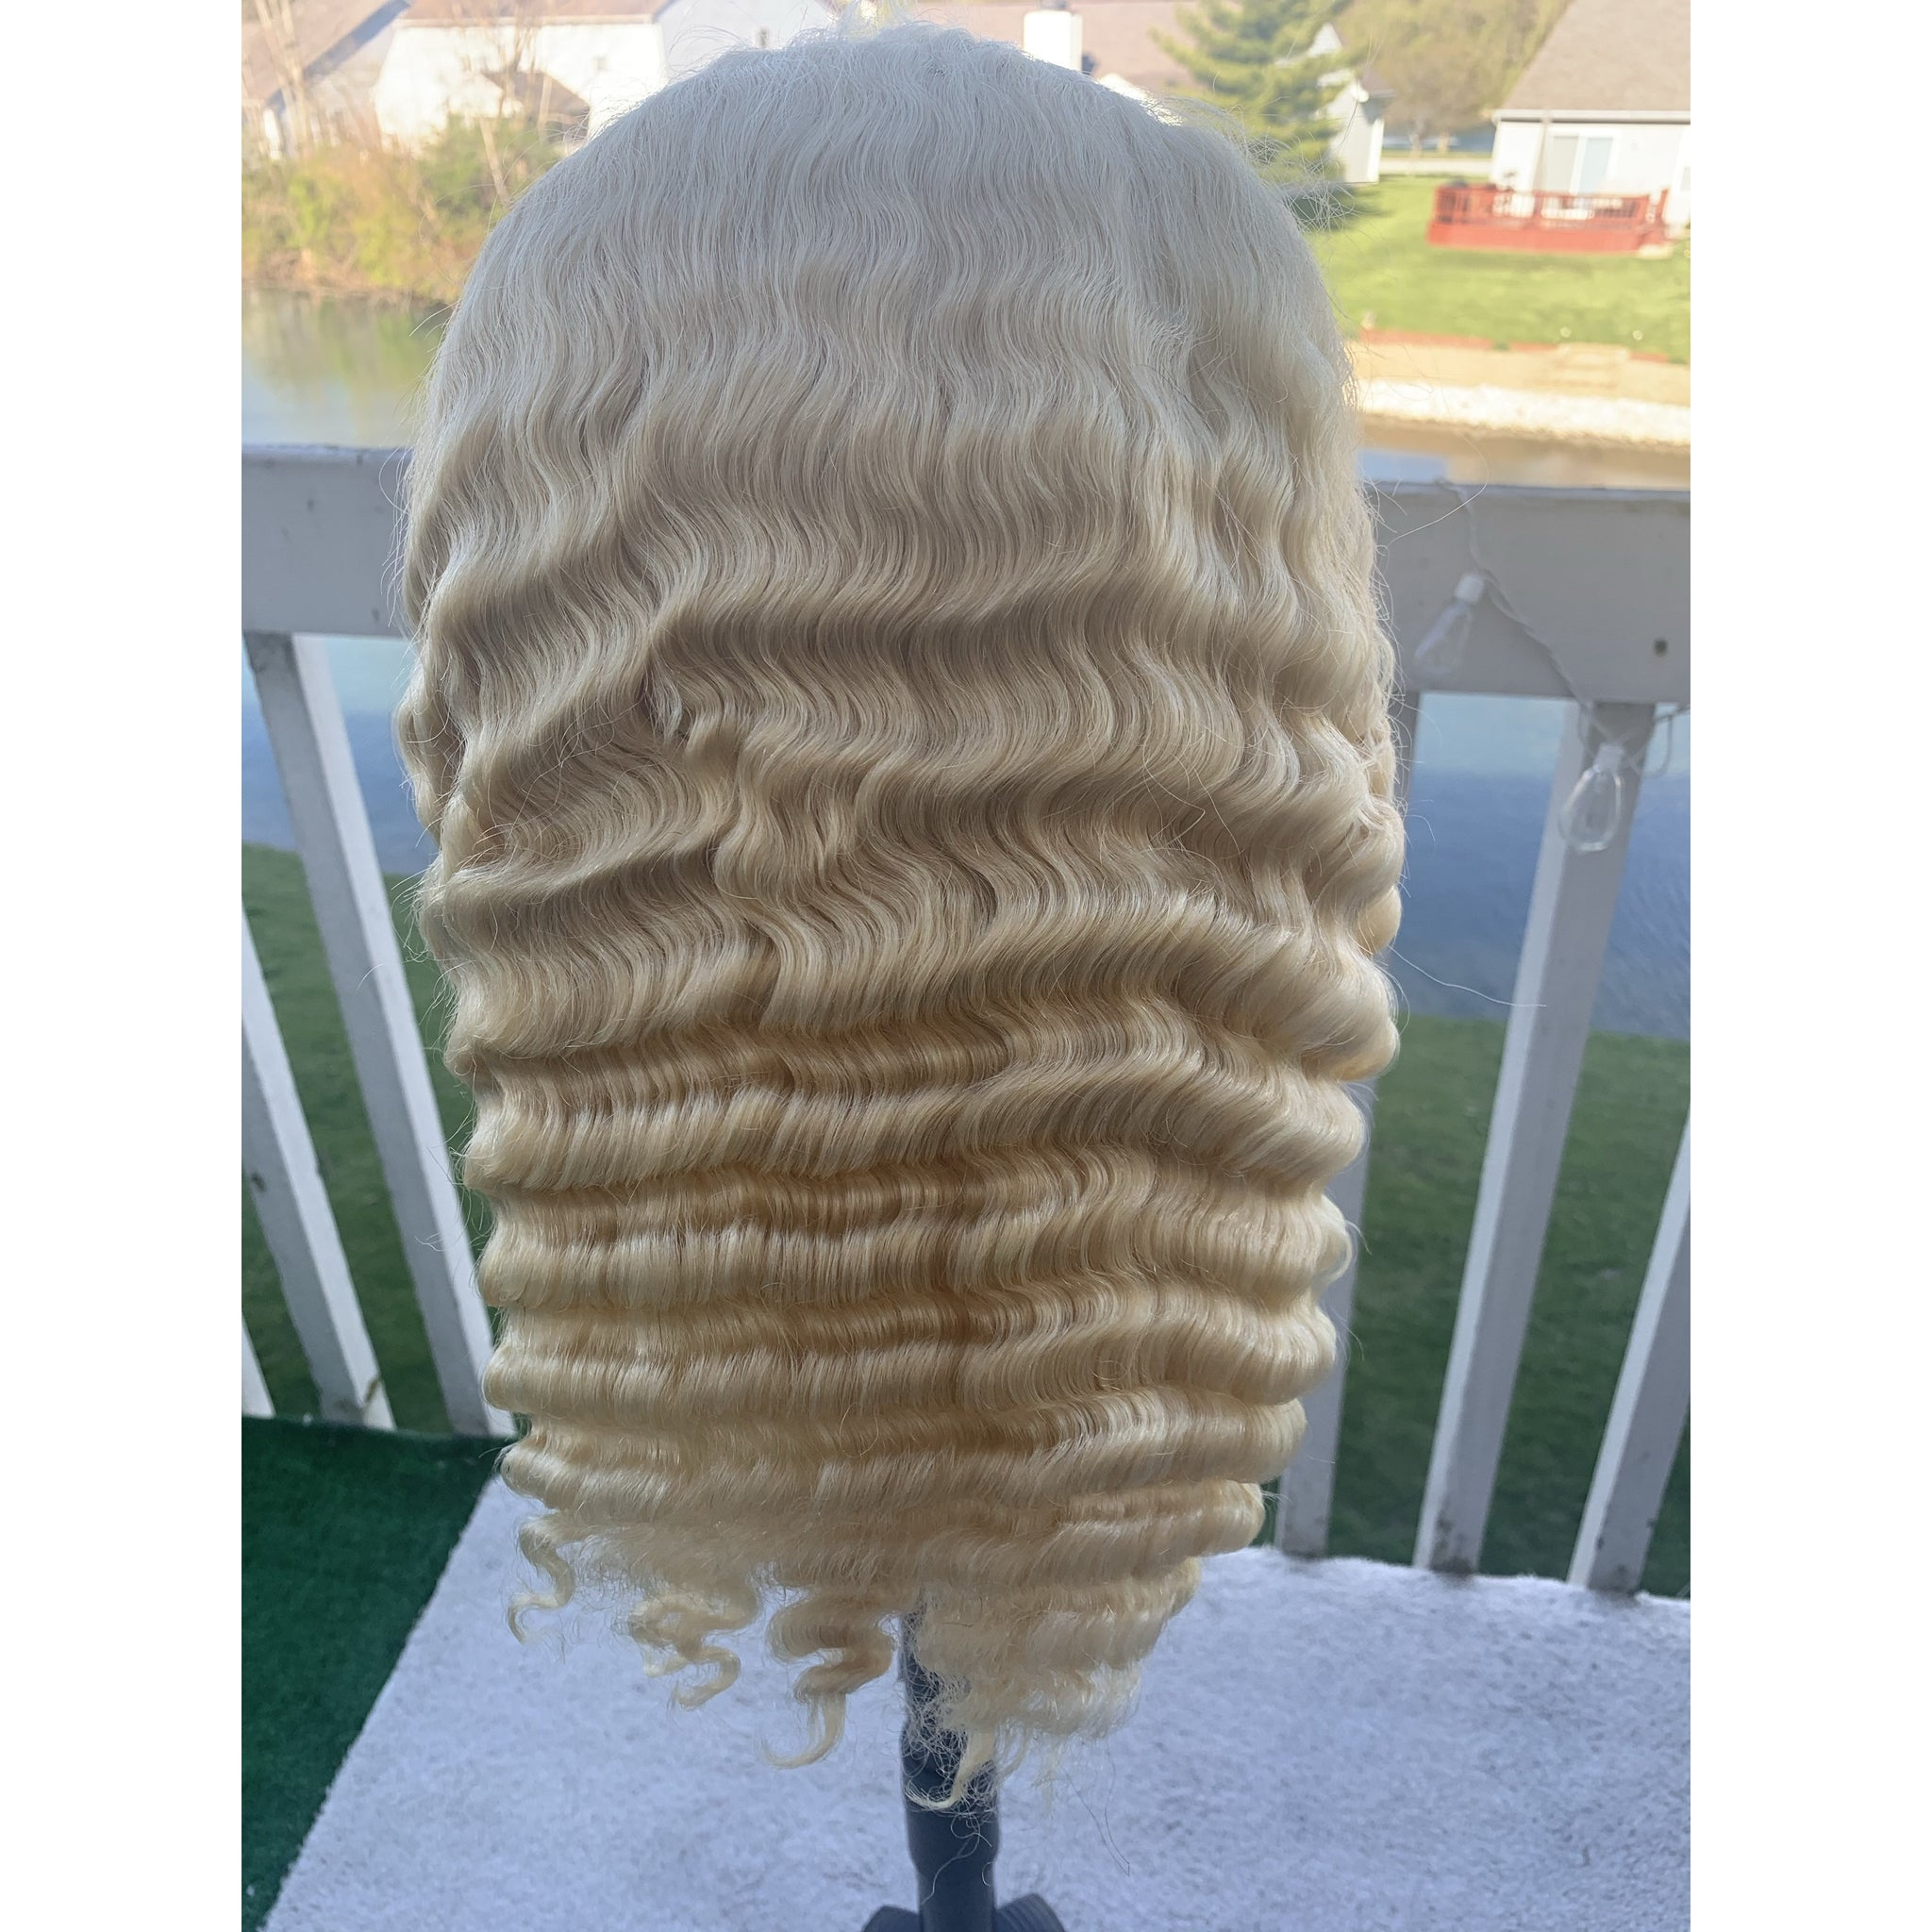 Peruvian Platinum Full Lace Frontal Wigs - HER VANITY HAIR